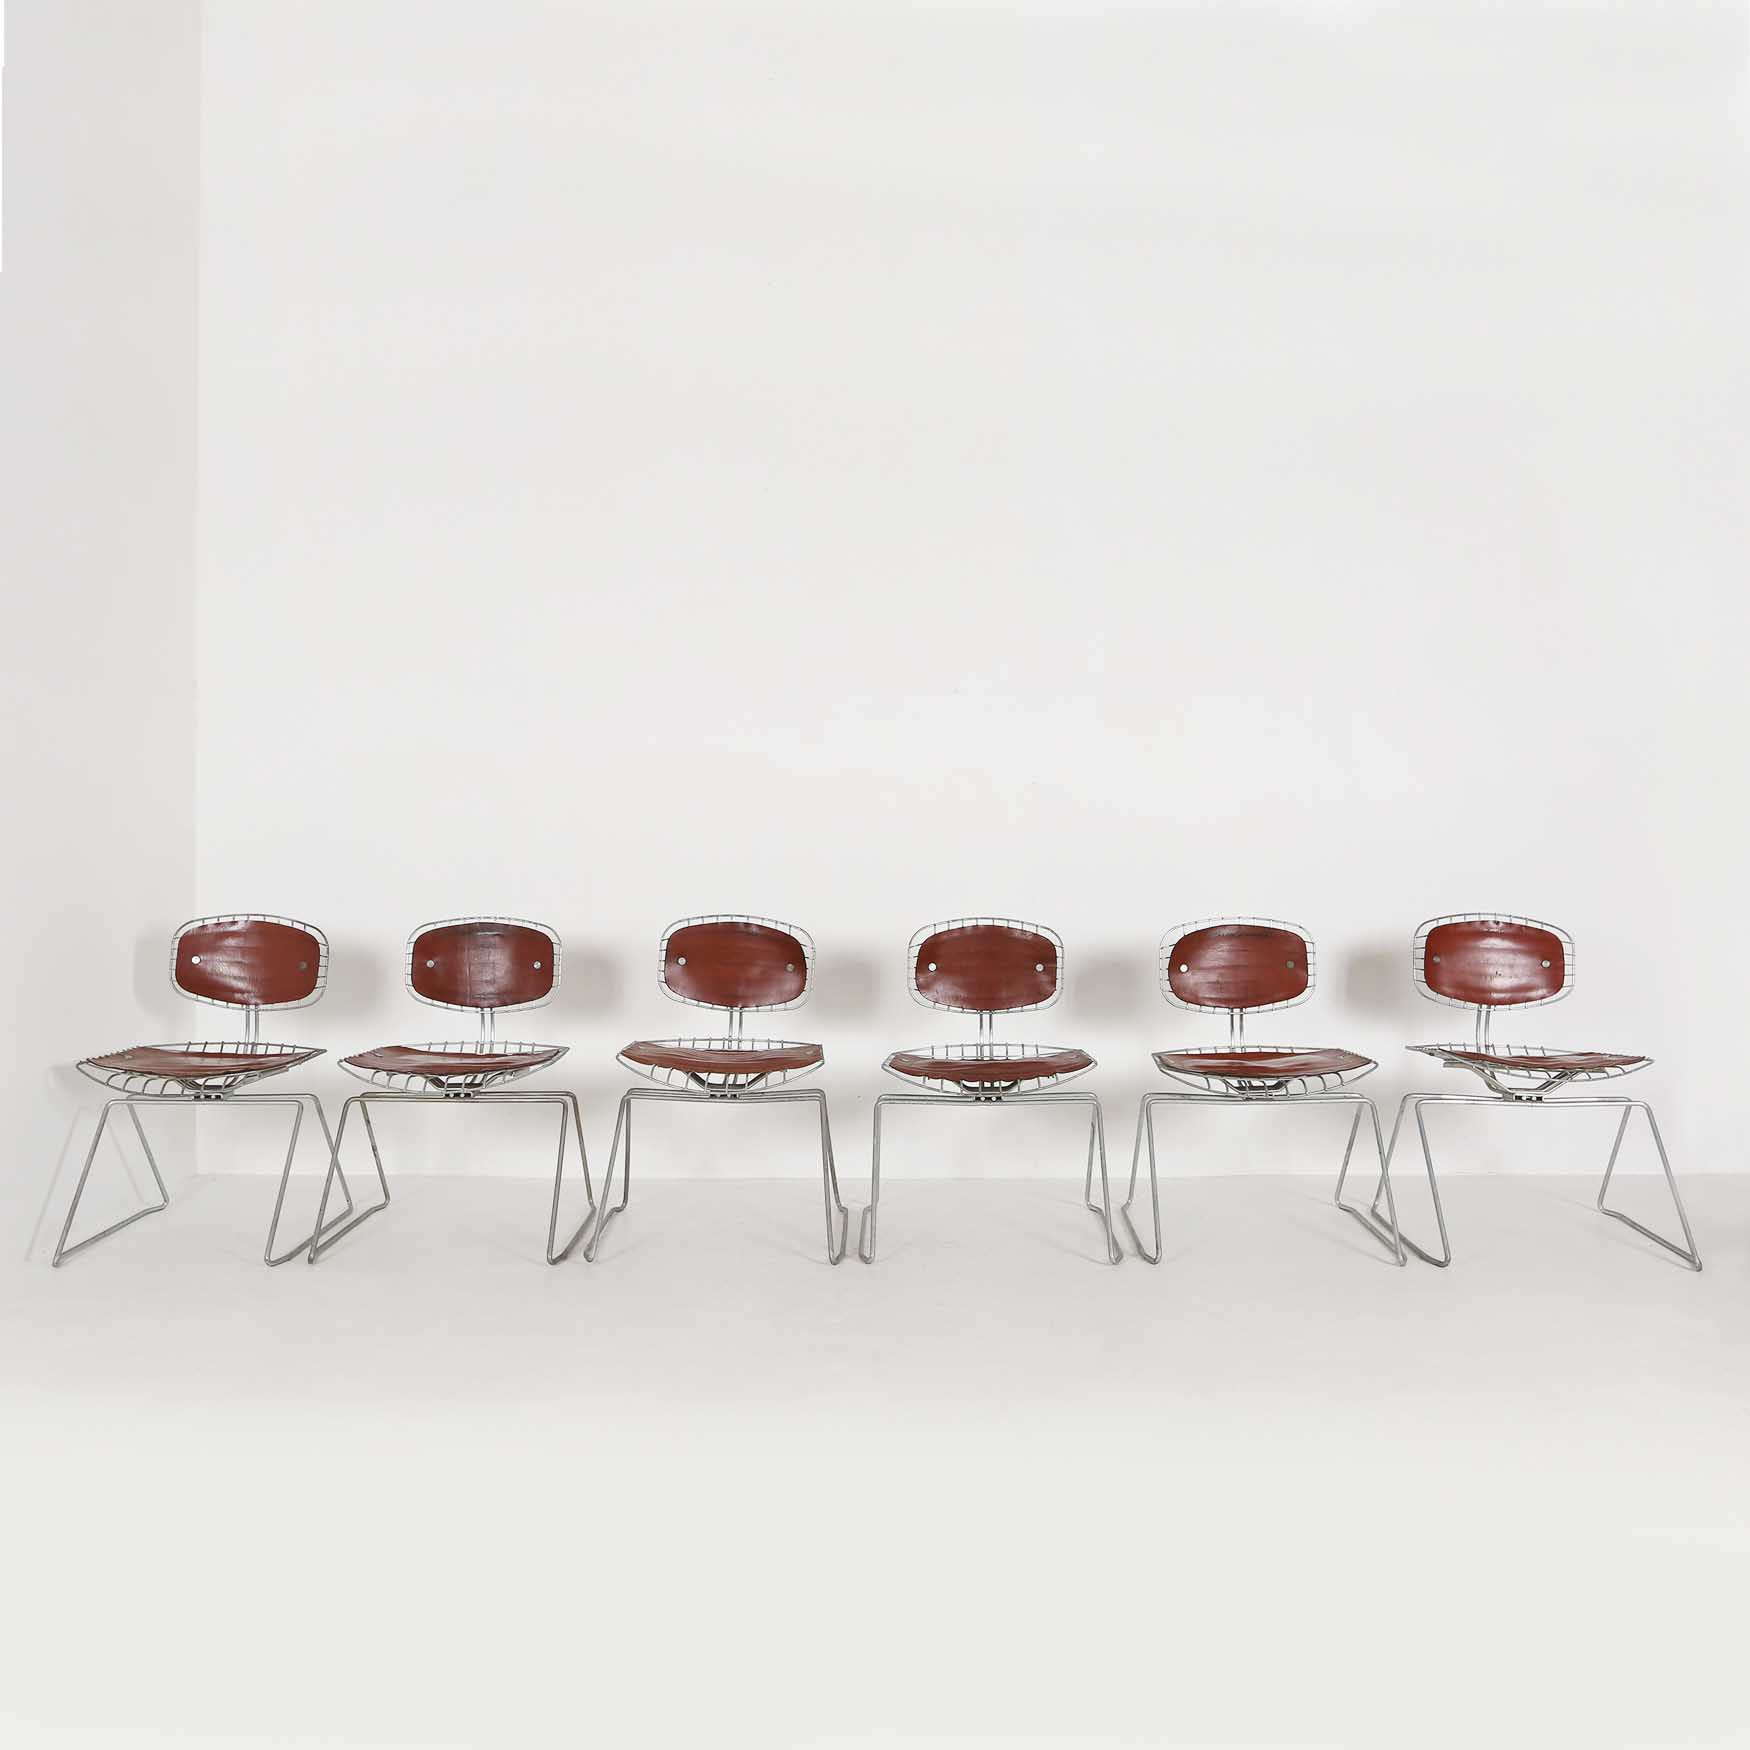 Set of Six Beaubourg Chairs by Michel Cadestin for the Pompidou Centrethumbnail